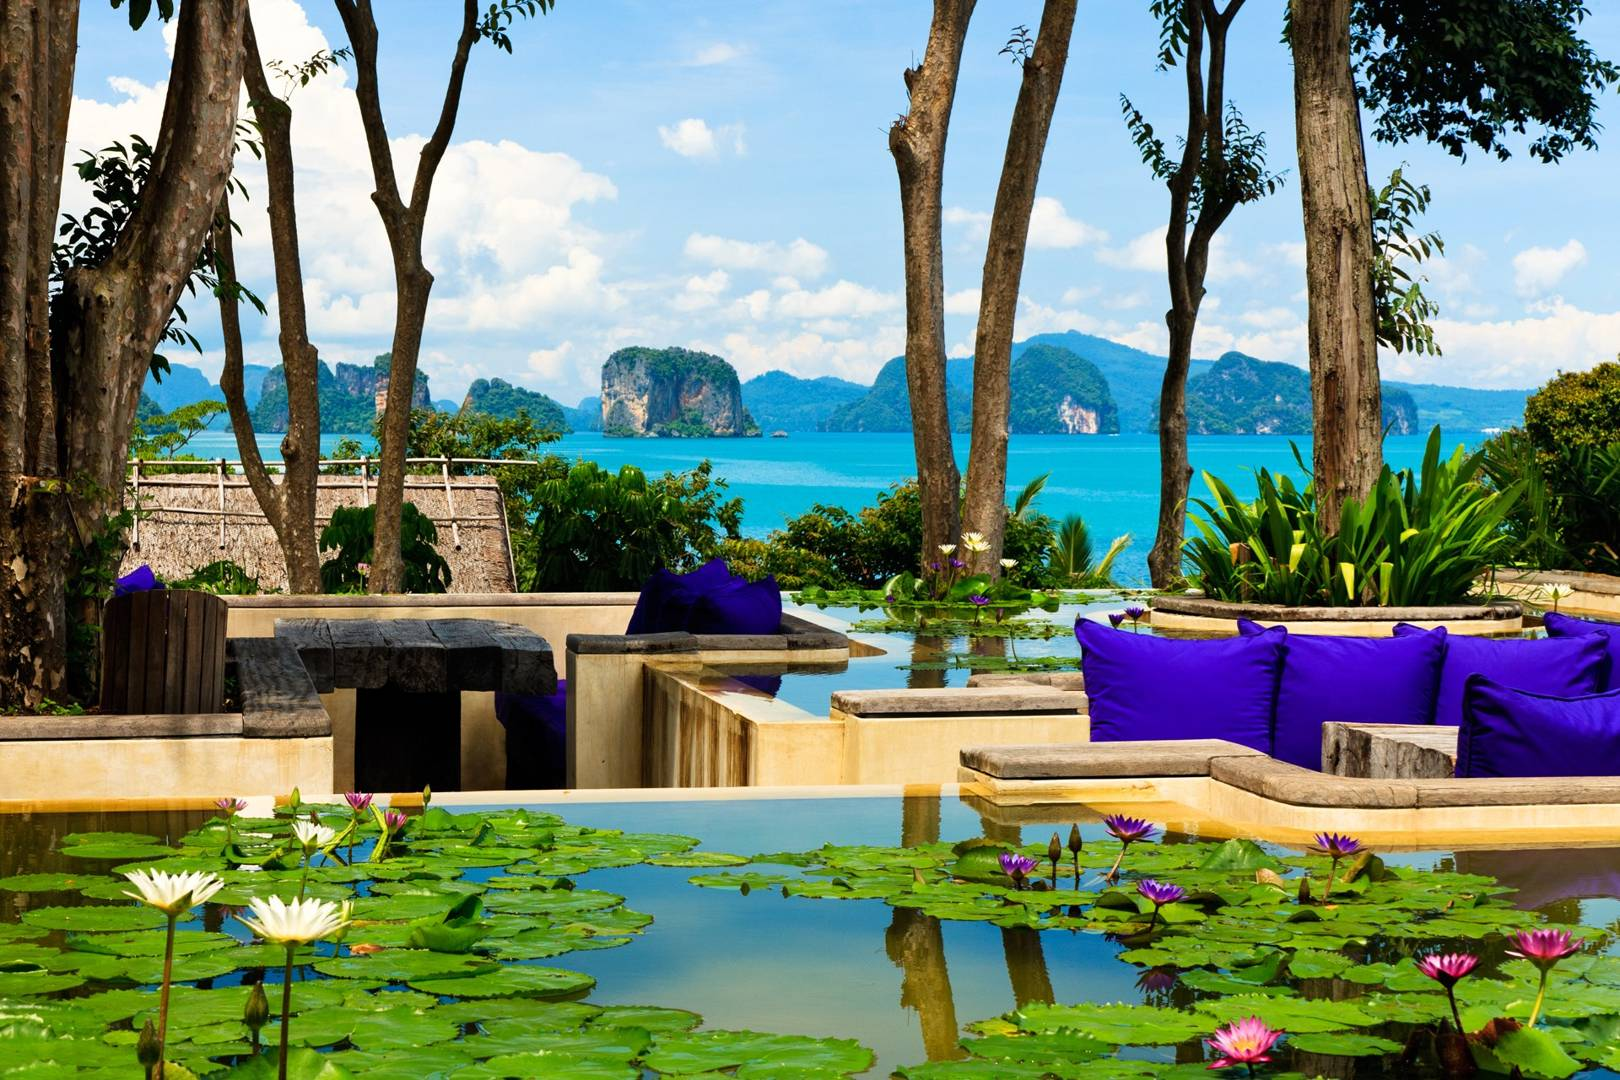 Best of Thailand\'s beaches | Where to stay, eat, drink and party ...